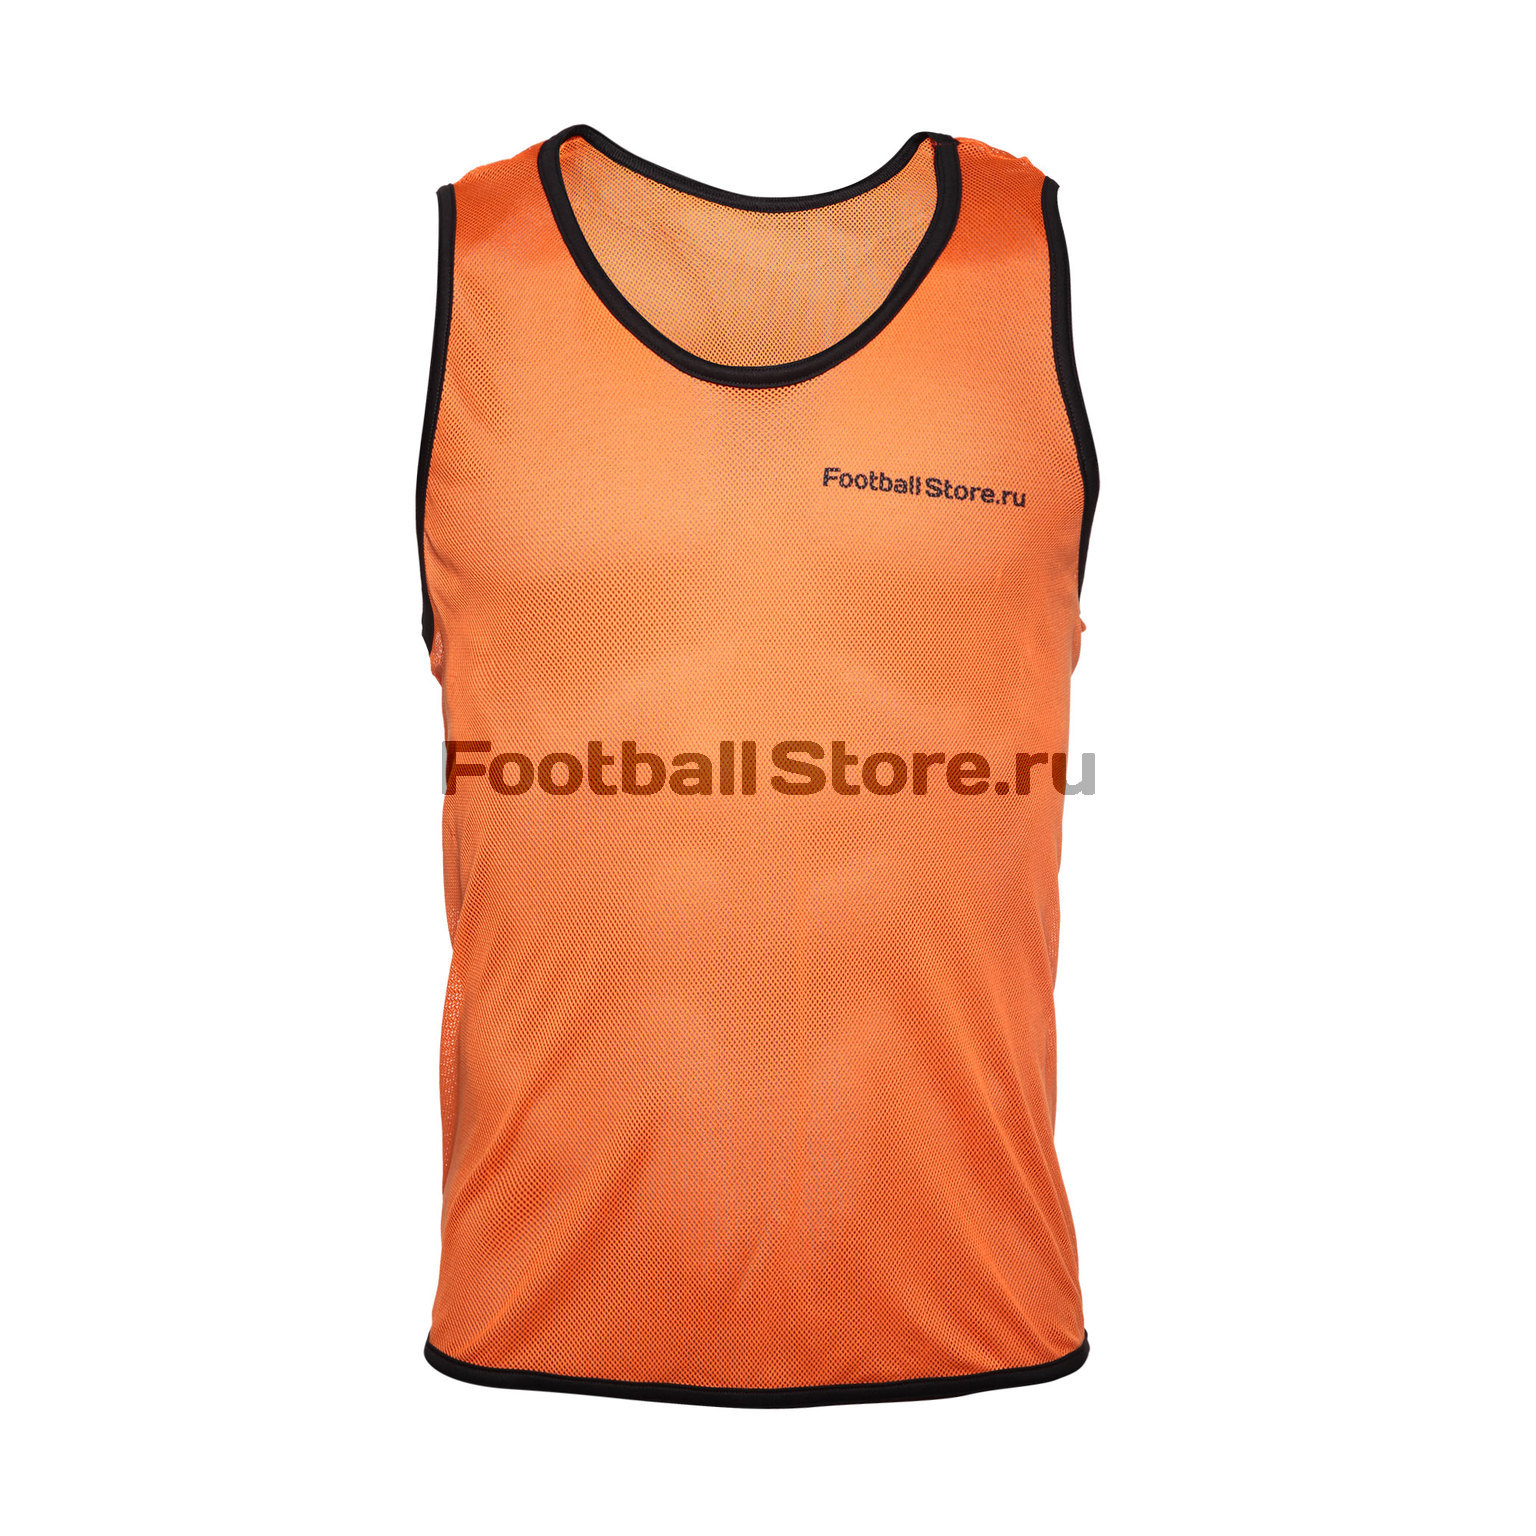 Манишка Footballstore 2K Sport Team 120708-815 цена